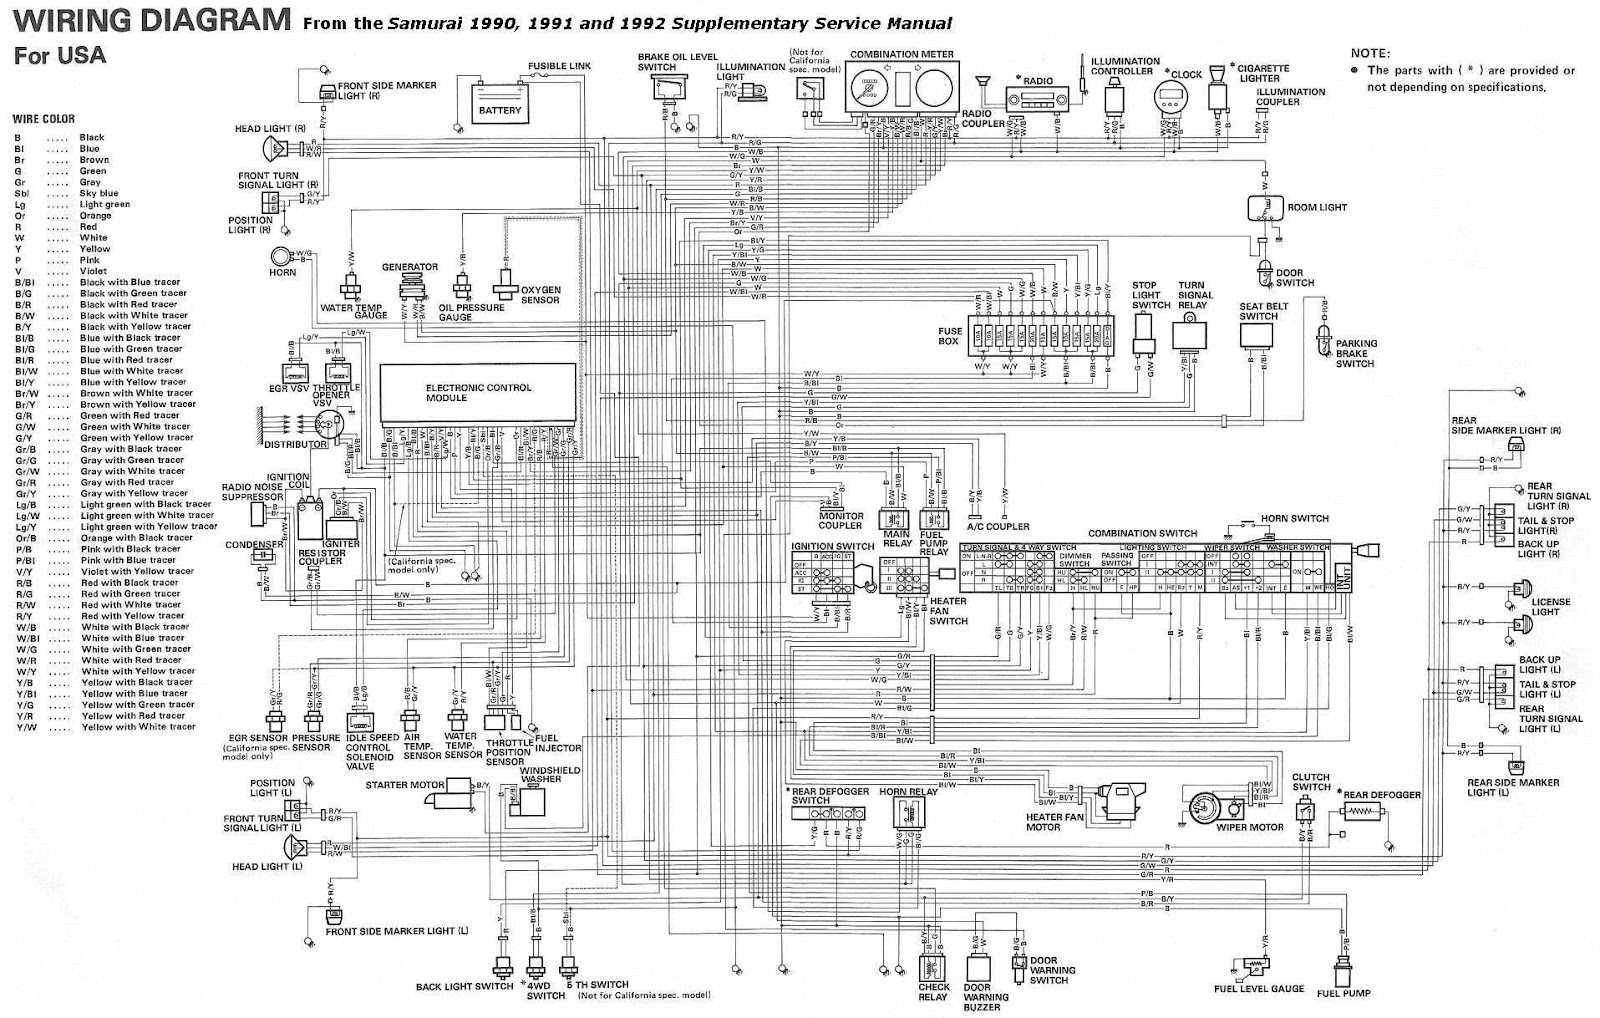 suzuki sx4 engine diagram wiring diagram img suzuki swift wiring diagram 2010 2009 suzuki sx4 engine [ 1600 x 1018 Pixel ]